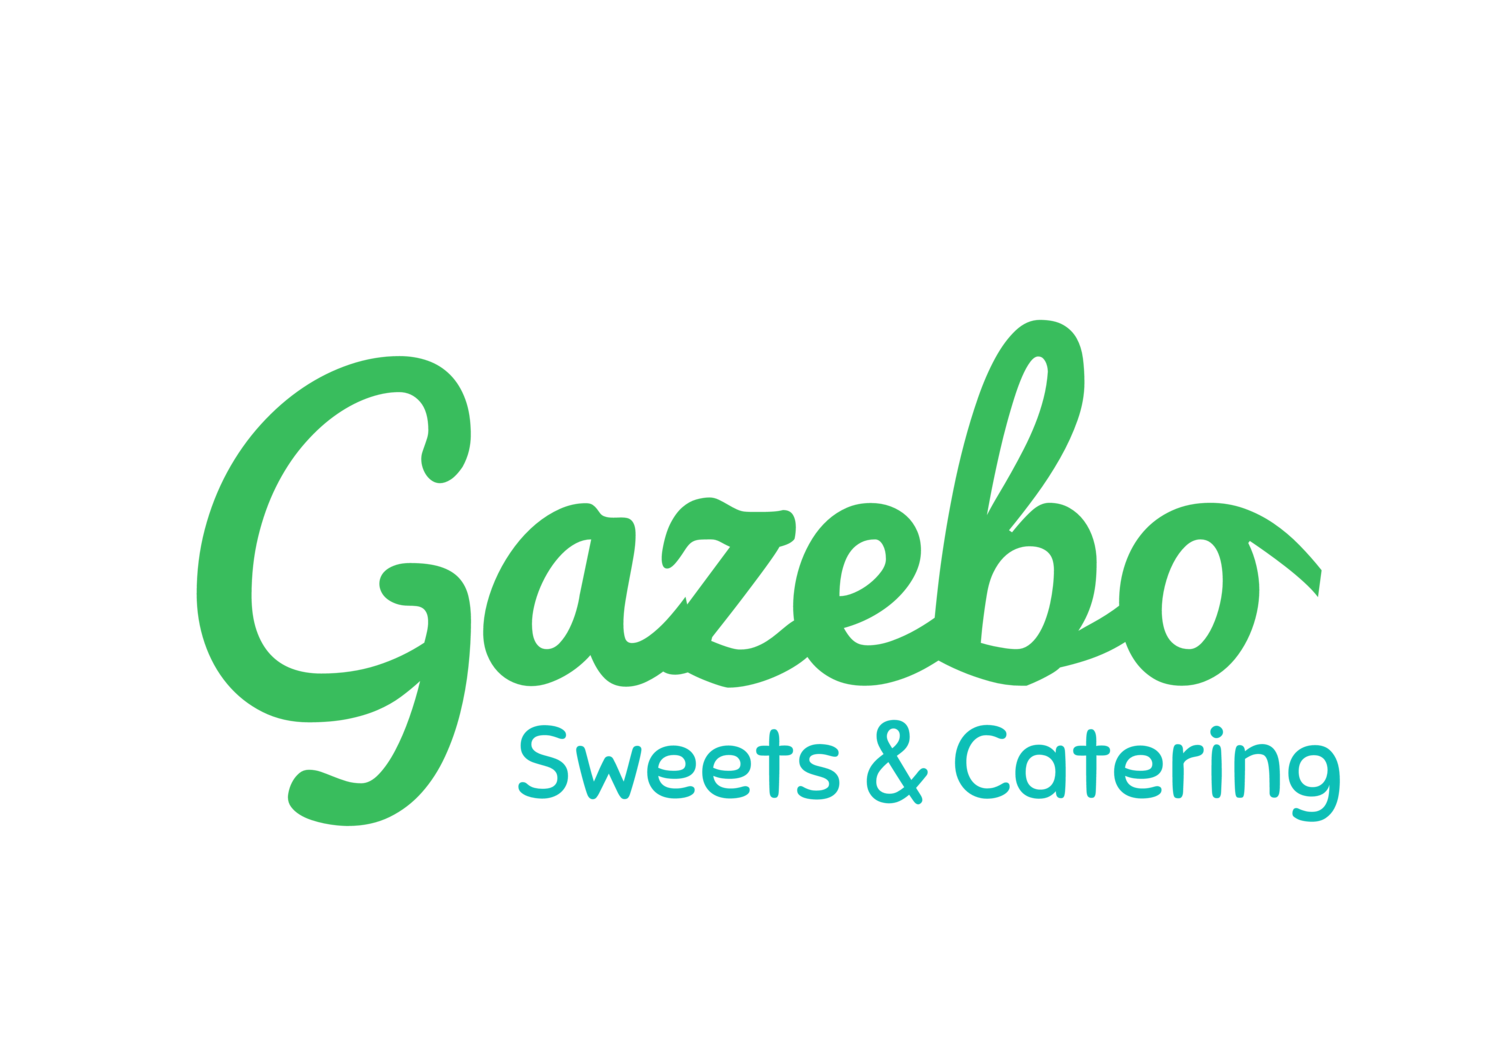 Gazebo Sweets & Catering